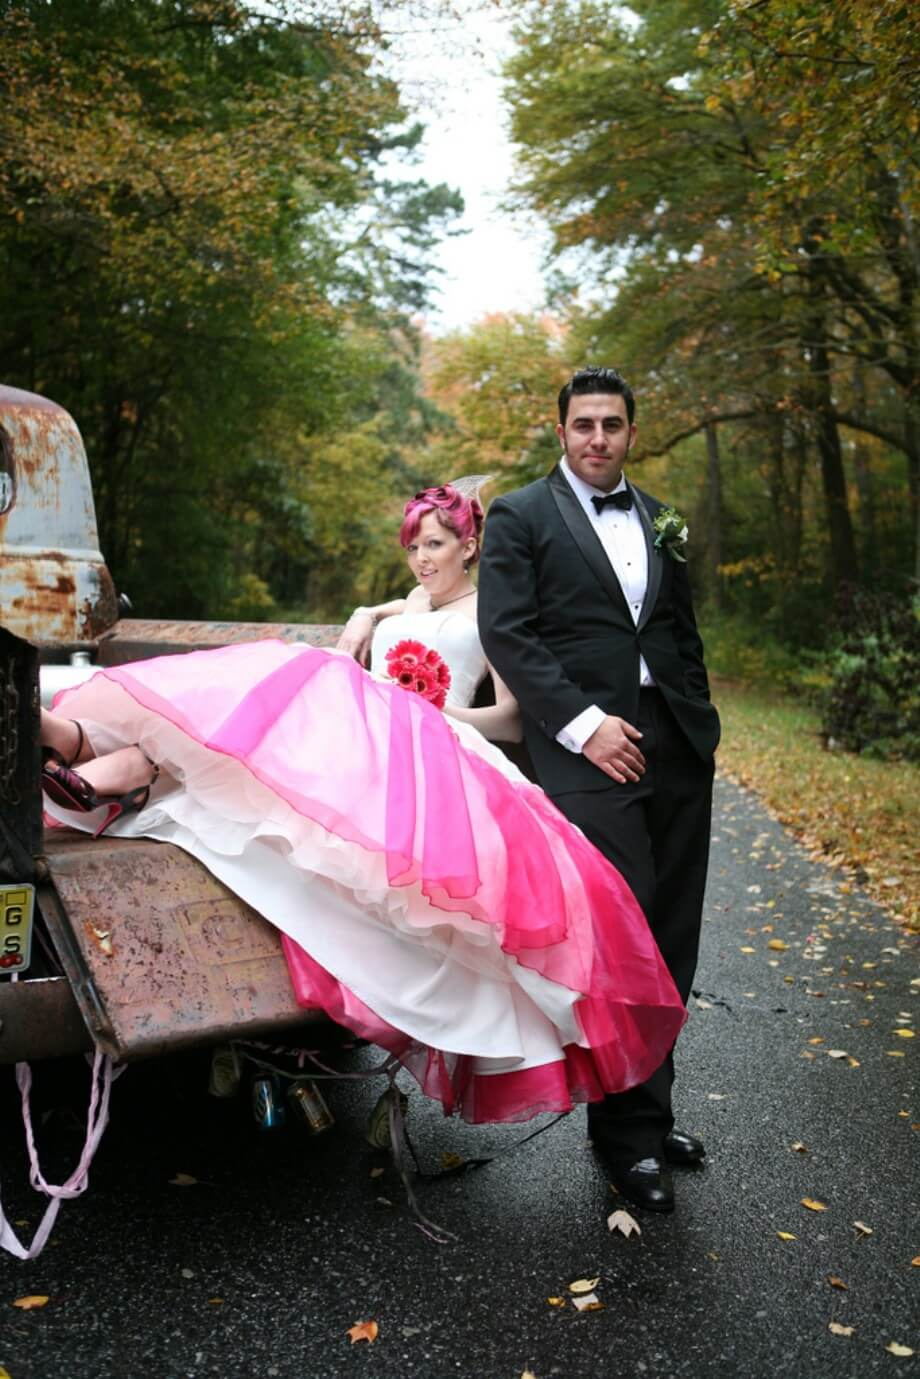 http://retrorenovation.com/wp-content/uploads/2010/08/rockabilly-wedding-couple.jpg